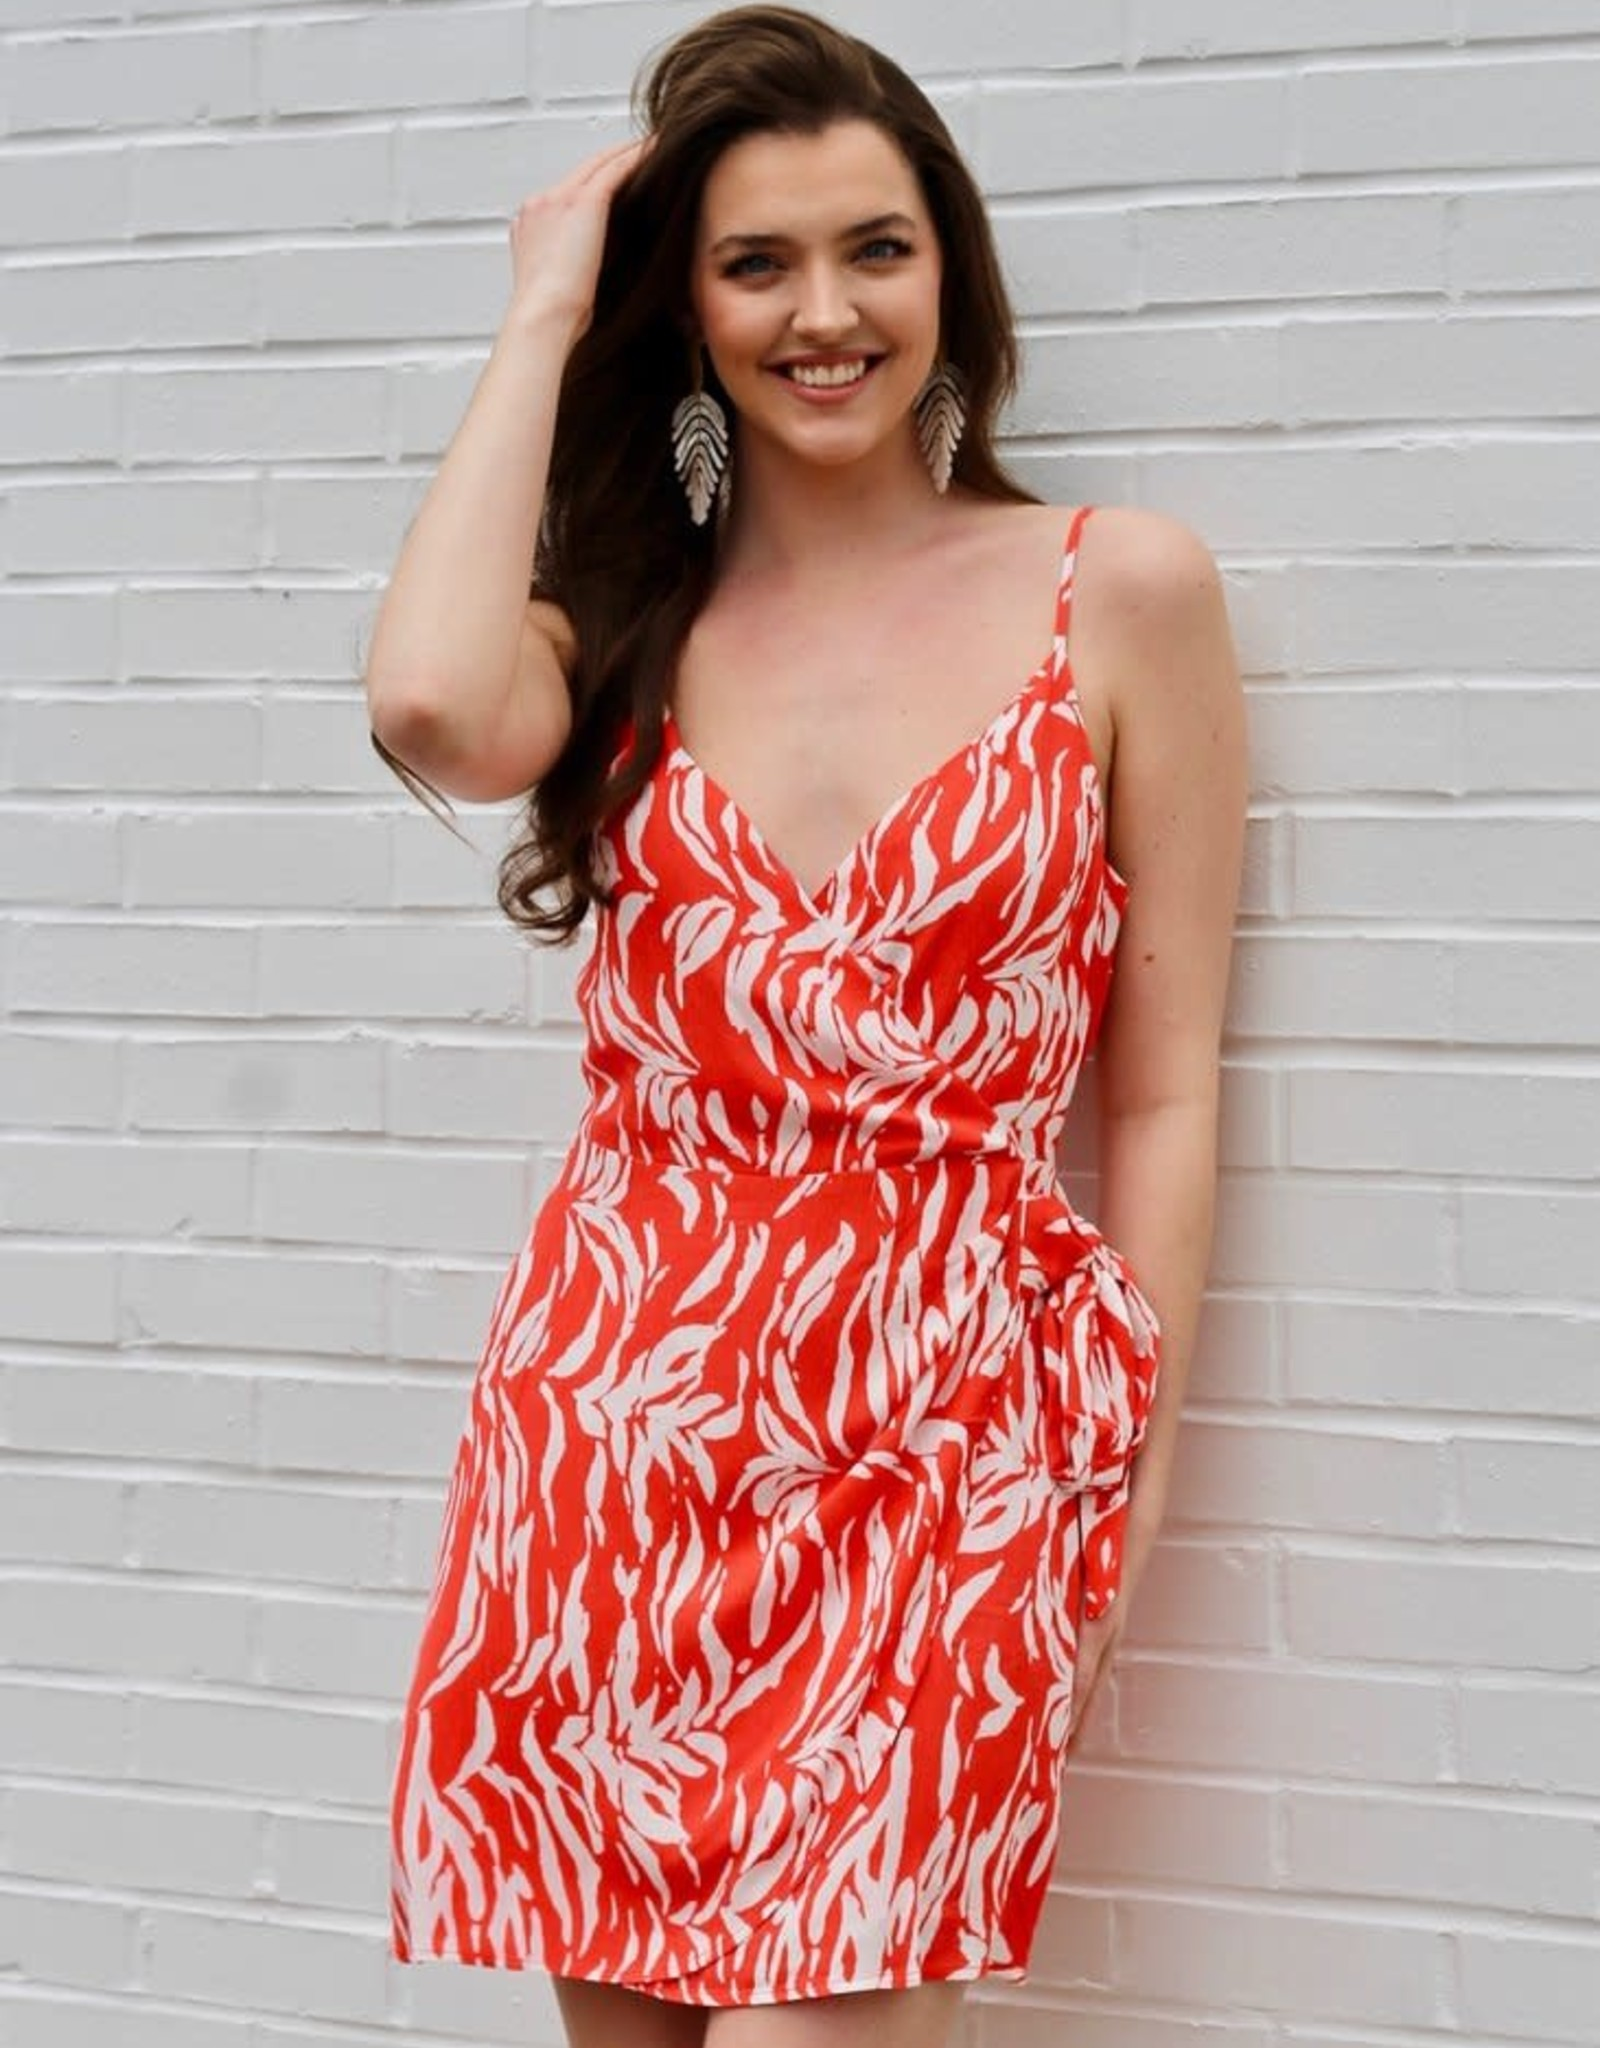 En Fuego Strappy Wrap Dress in Coral & White